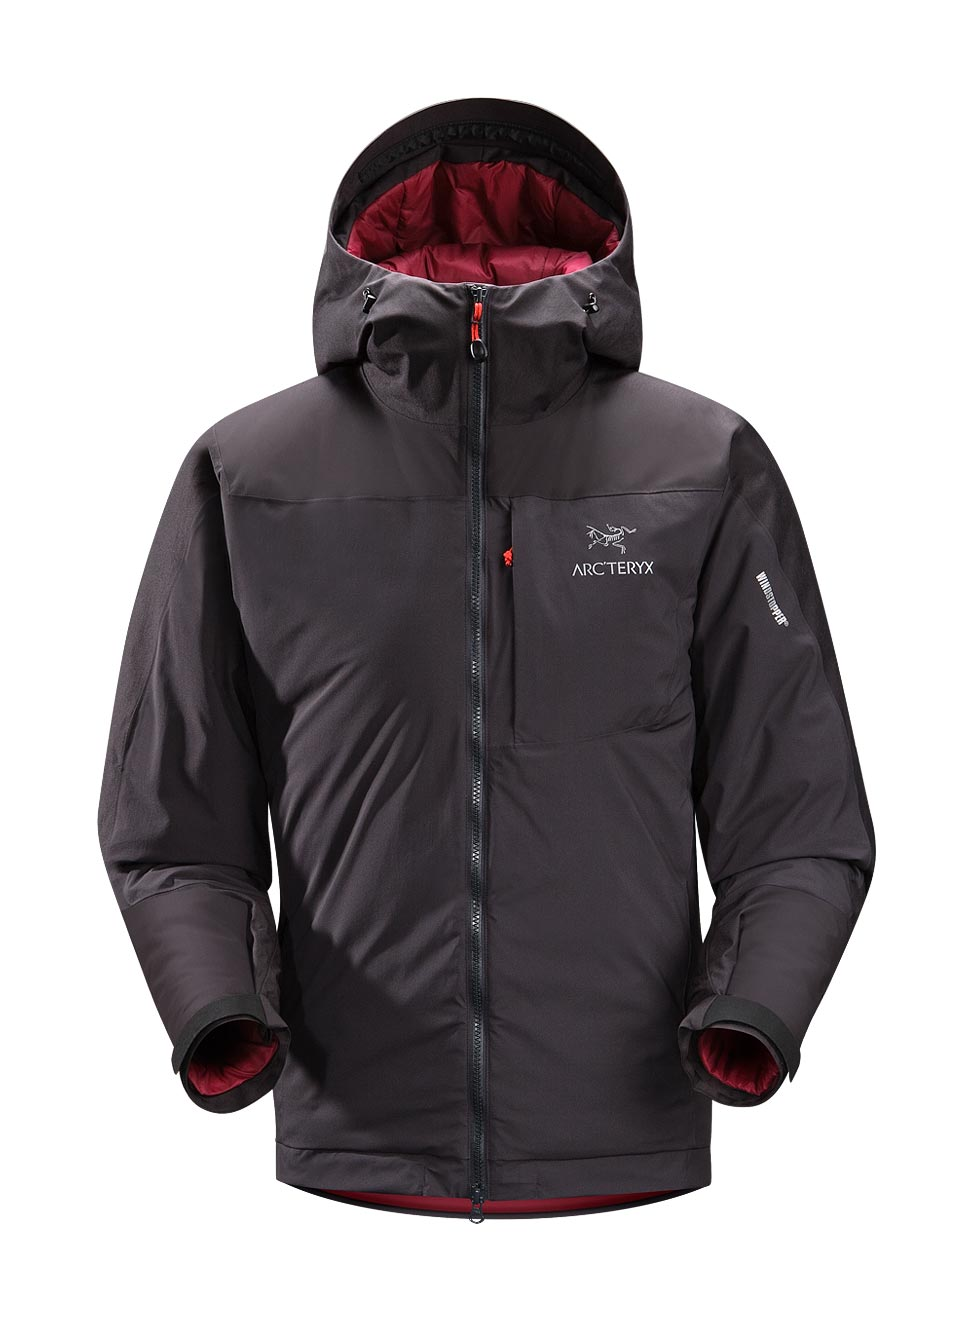 Arcteryx Jackets Men Carbon Copy Kappa Hoody